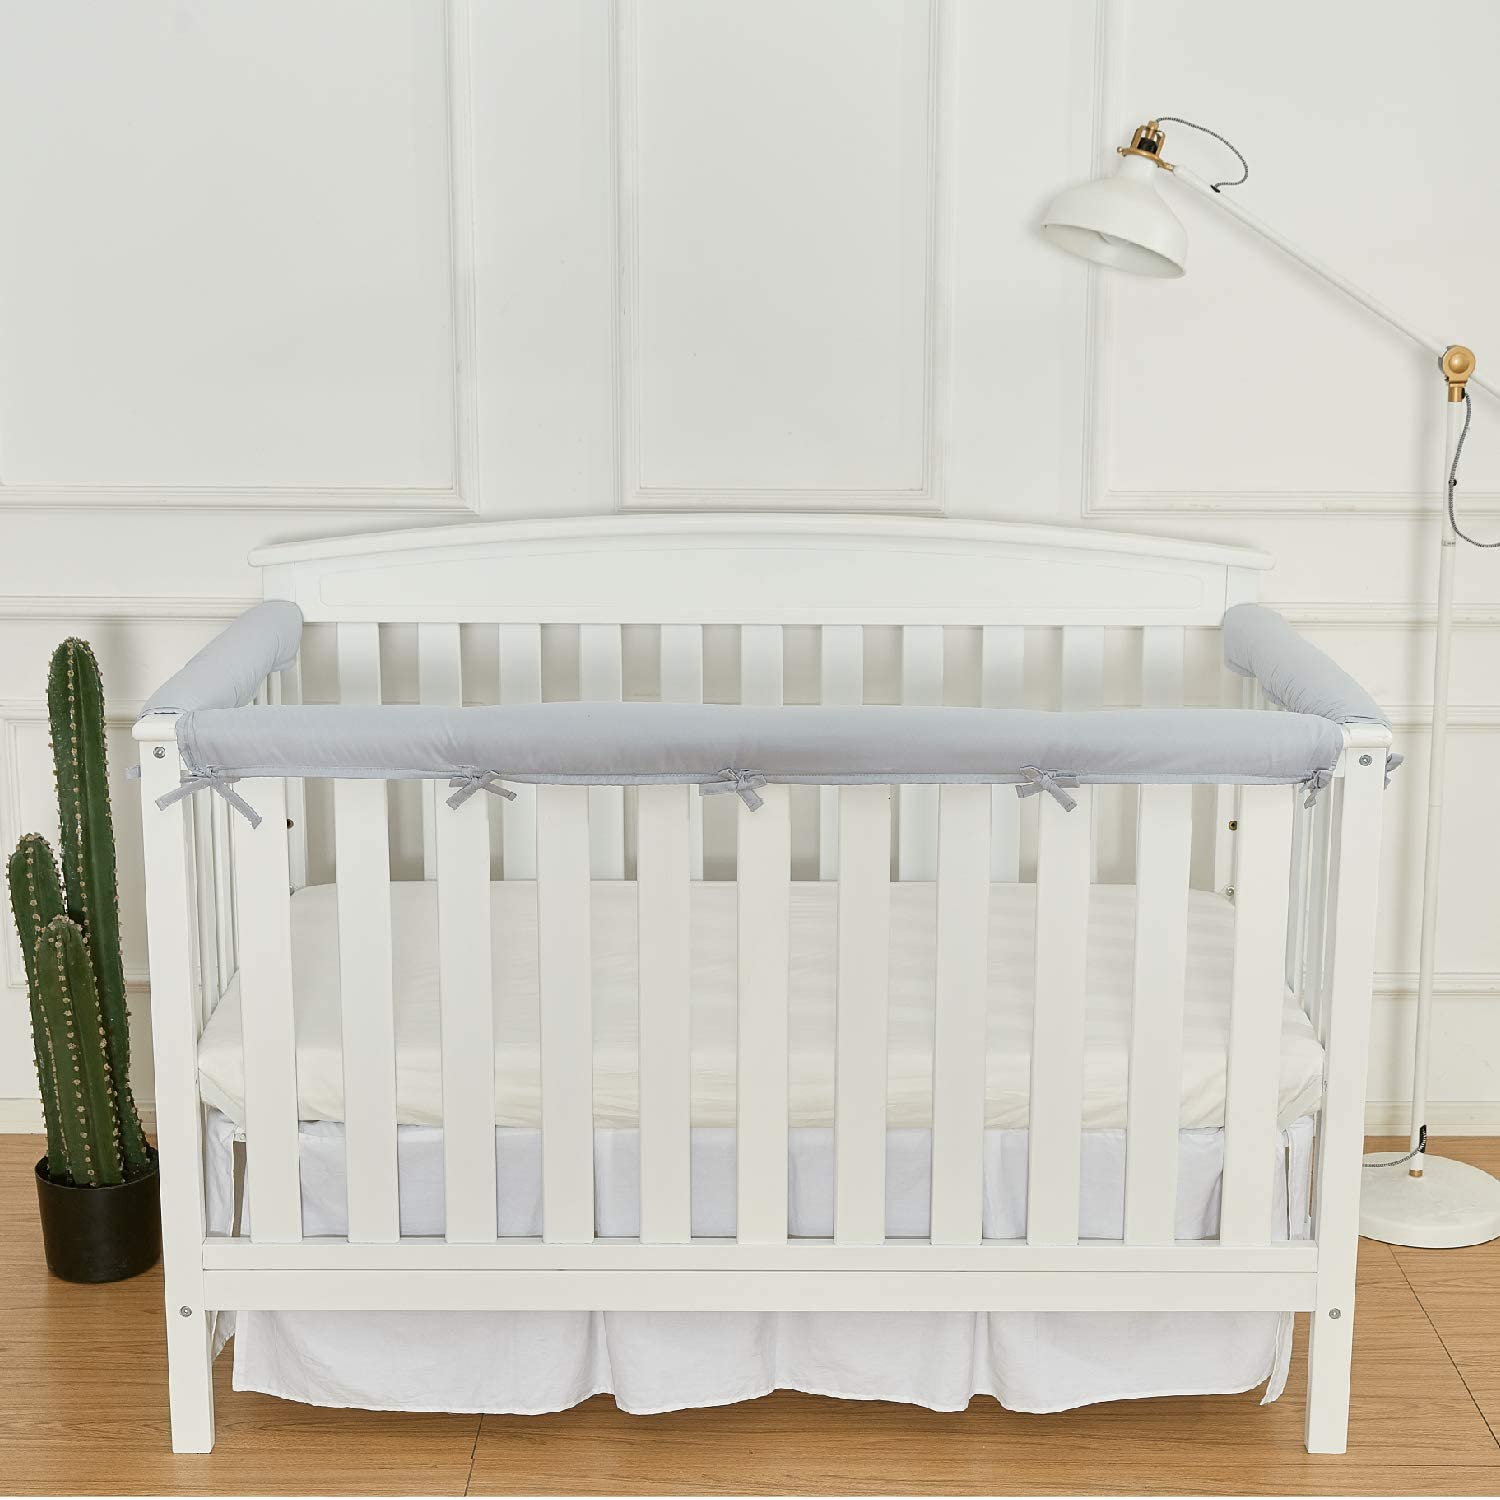 White EXQ Home 3-Piece Baby Crib Rail Cover Set for 1 Front Rail and 2 Side Rails,Safe Kids Padded Crib Rail Protector from Chewing for Standard Cribs,Soft Batting Inner for Baby Teething Guard